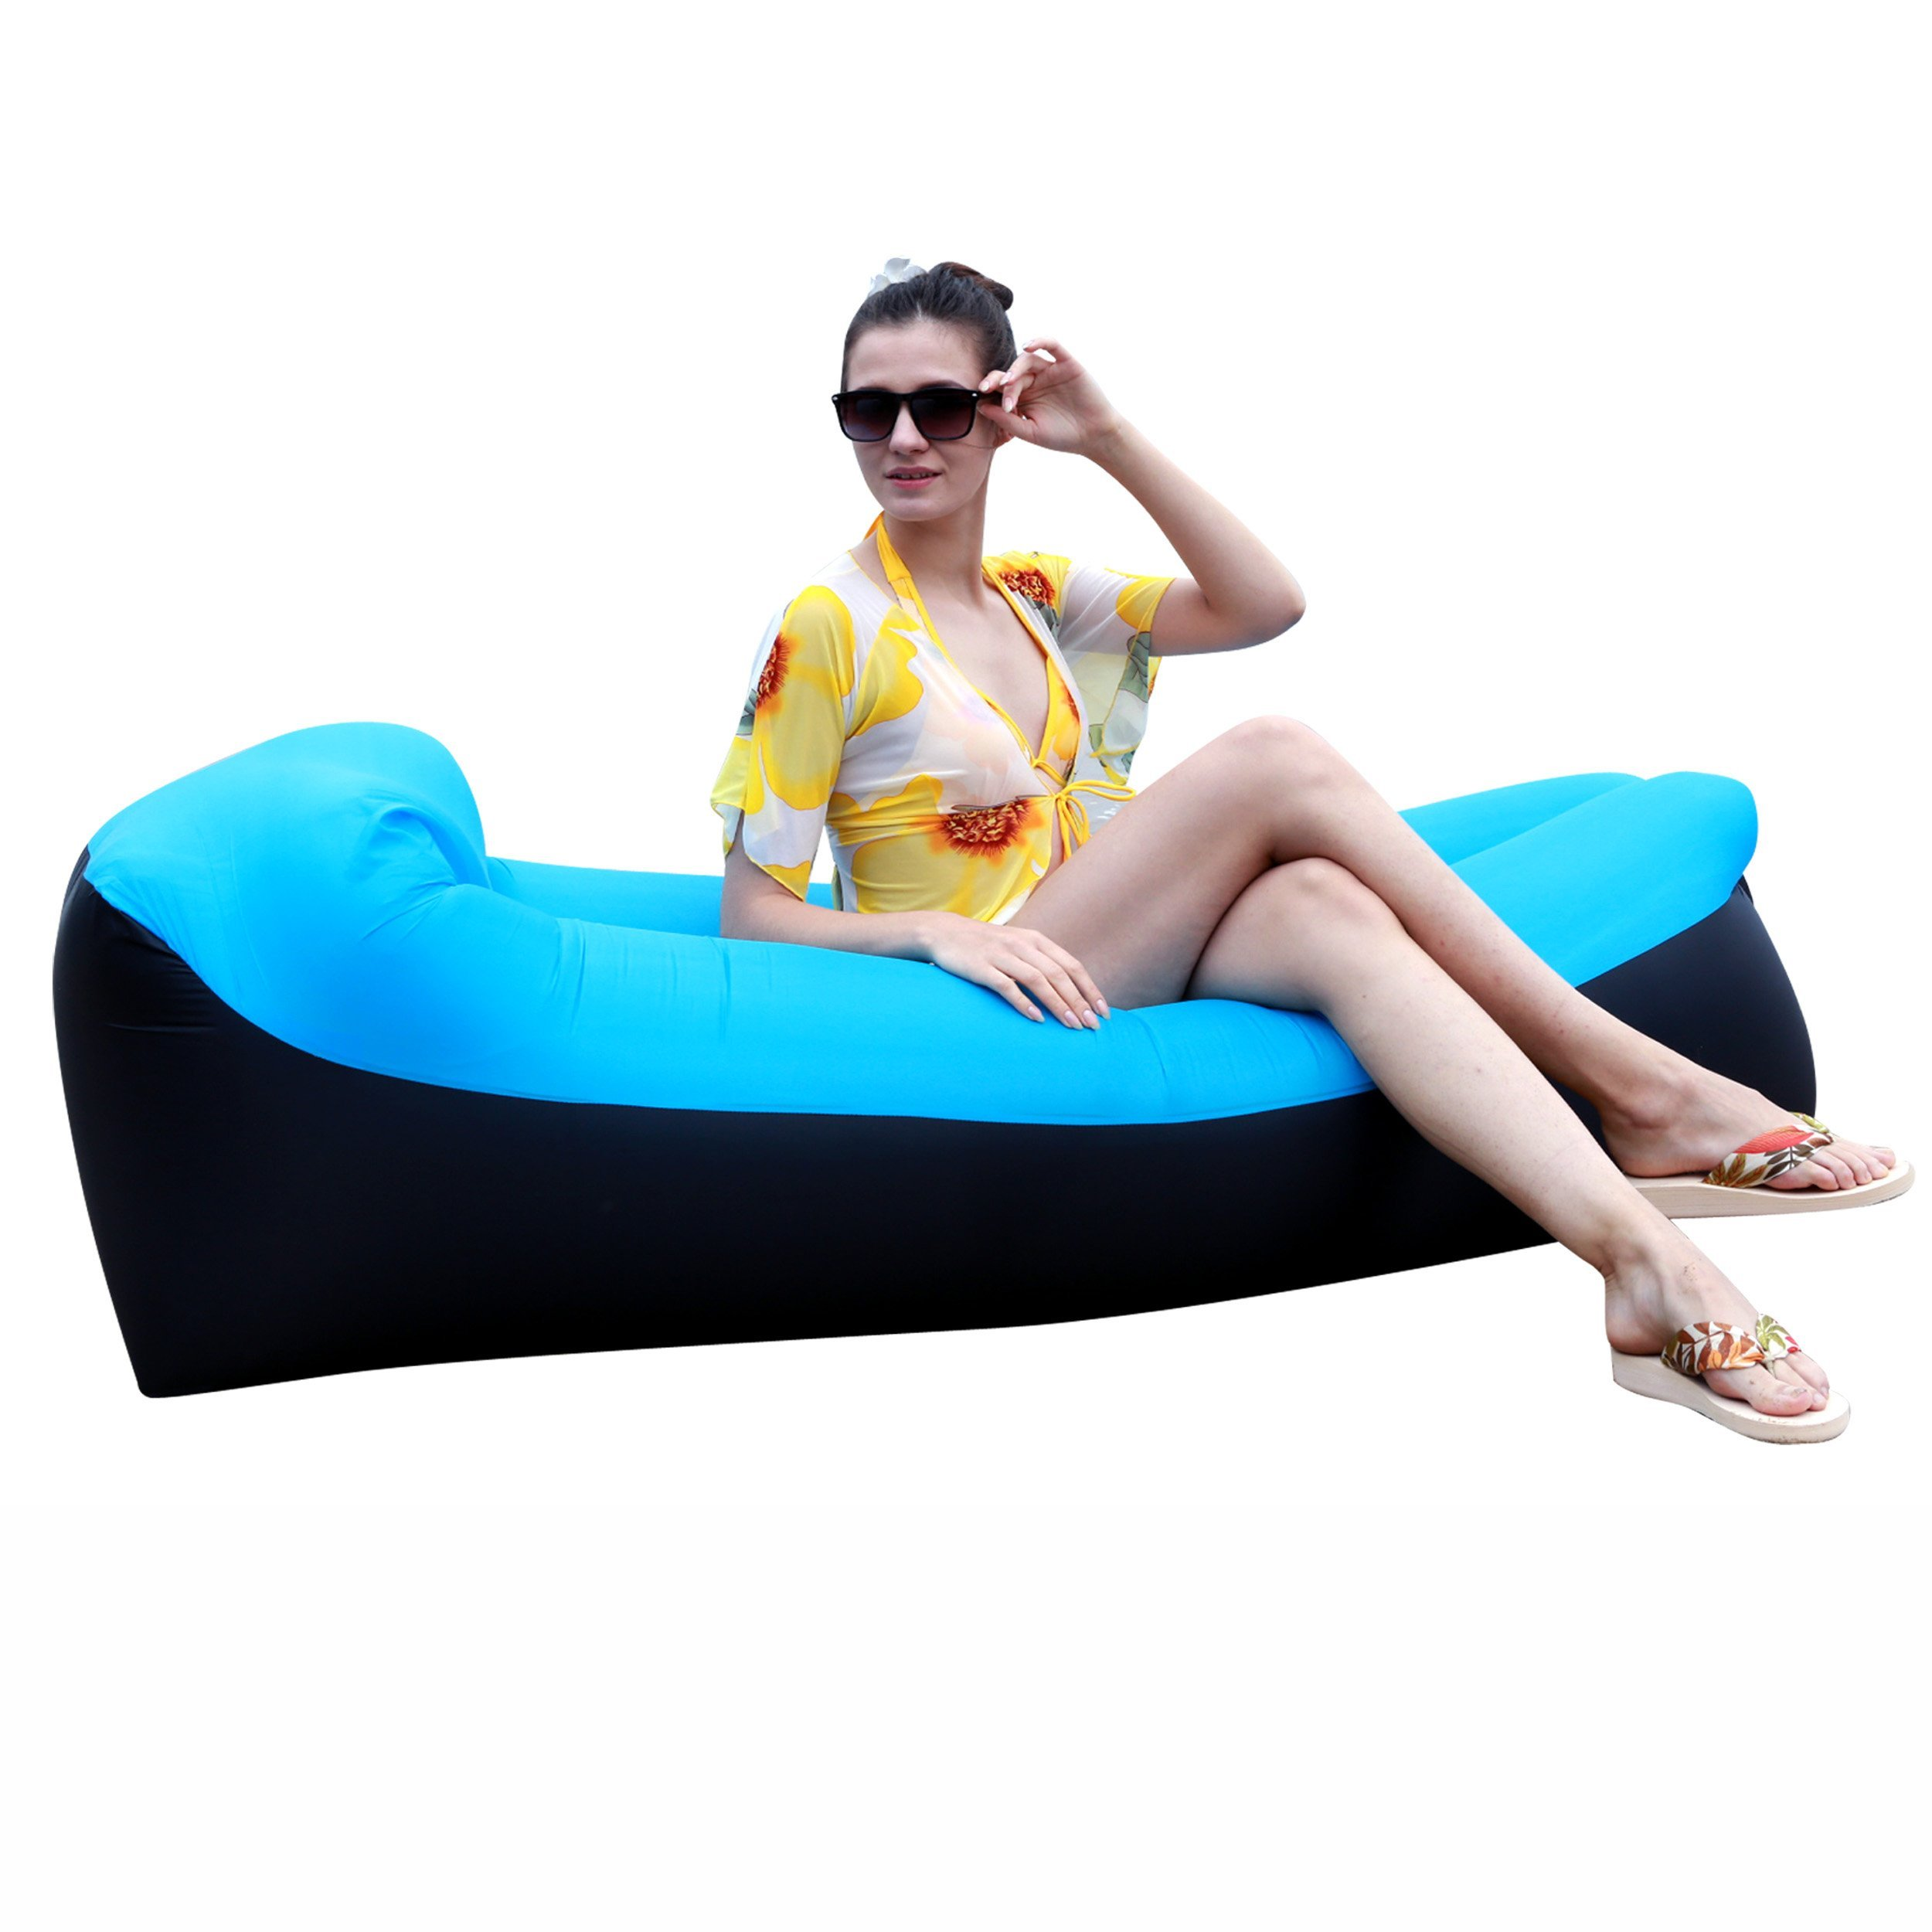 Inflatable Lounger Air Sofa Chair with U-shape neck pillow and handy storage bag for Camping&Hiking & Swimming pool to use as mattress (outdoor&indoor) (Blue Lounger)